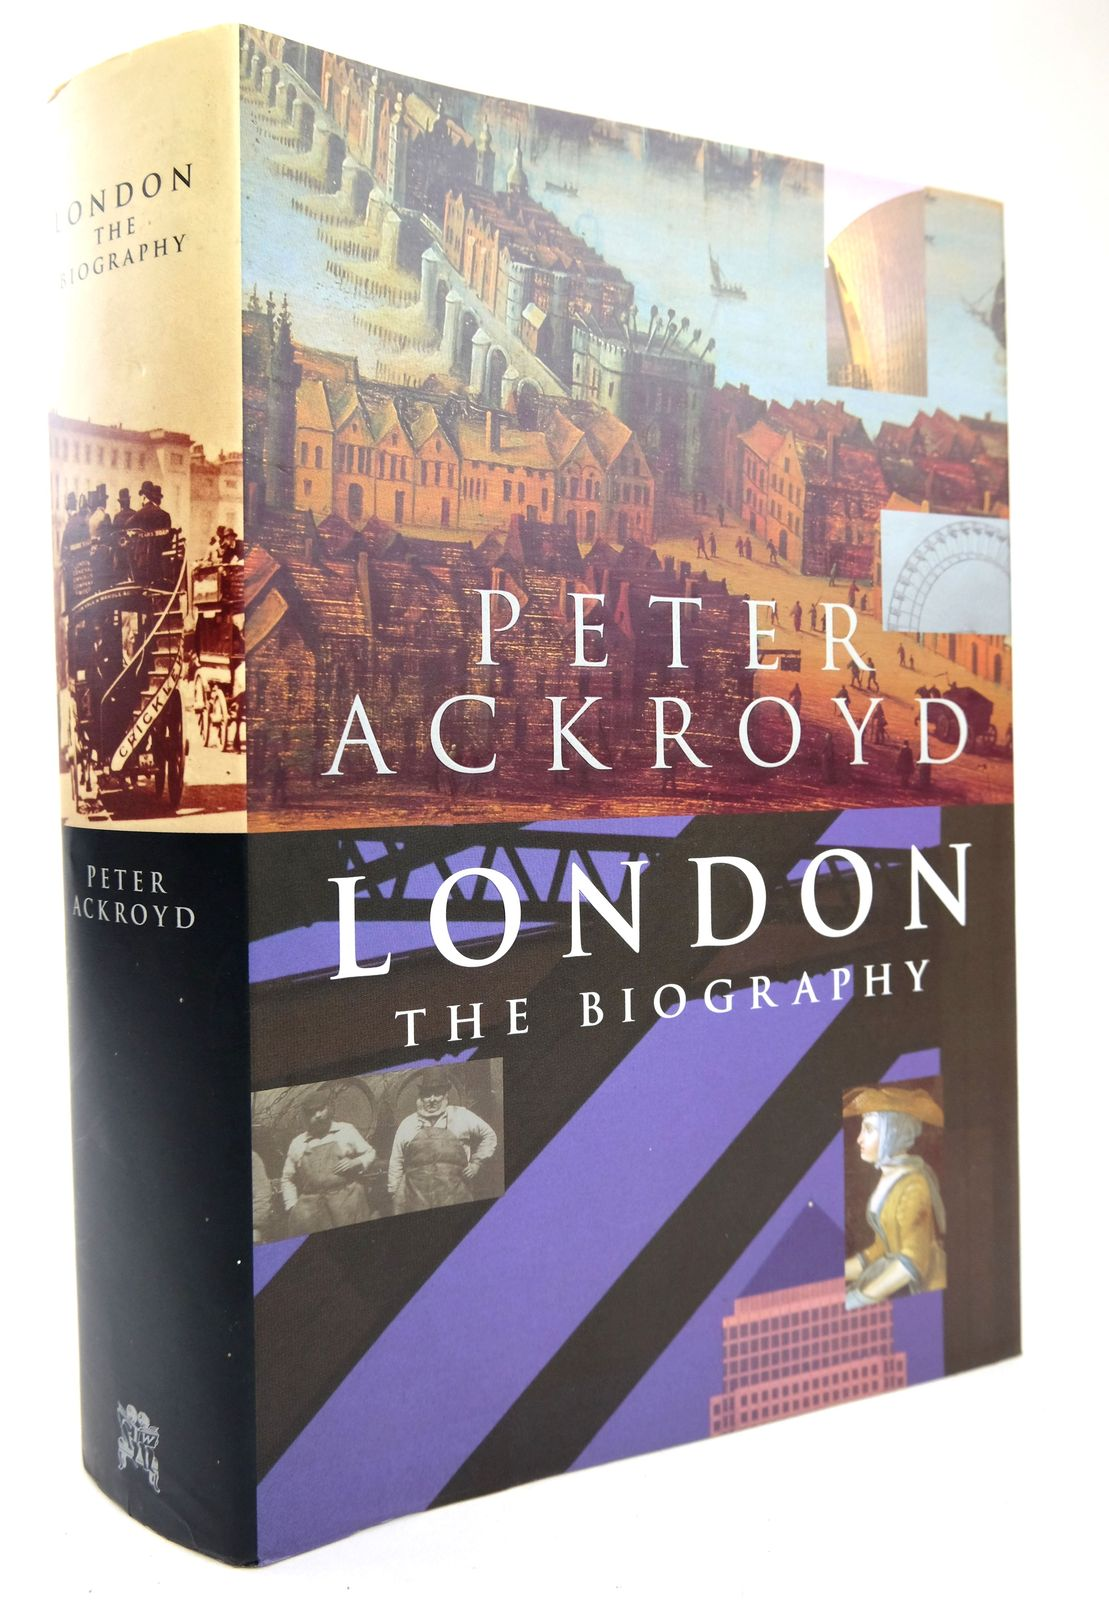 Photo of LONDON THE BIOGRAPHY written by Ackroyd, Peter published by Chatto & Windus (STOCK CODE: 1818737)  for sale by Stella & Rose's Books